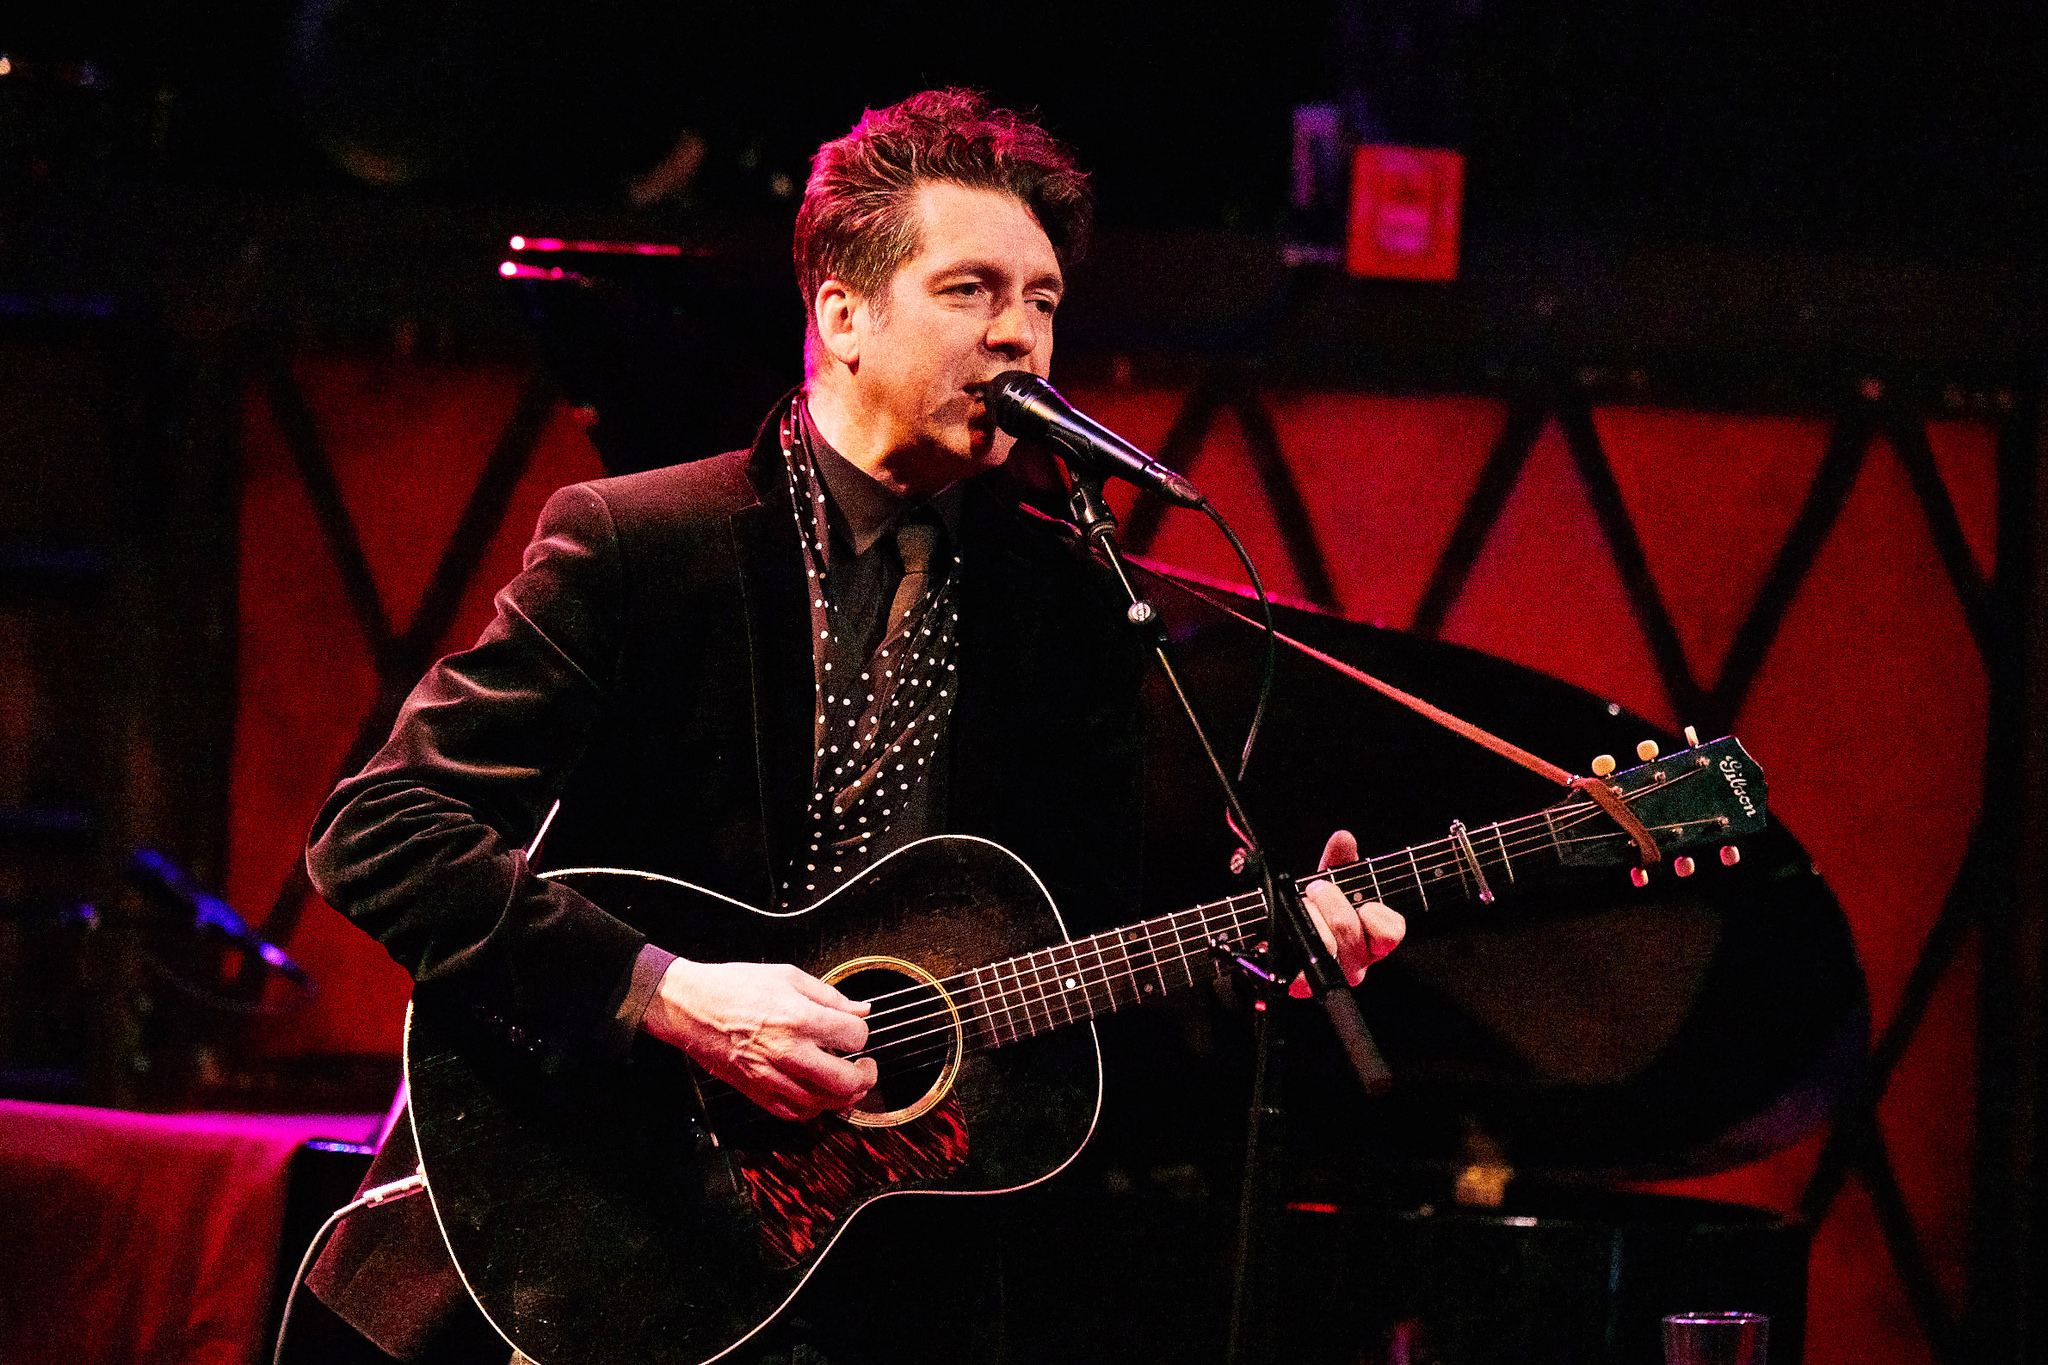 Joe Henry at Rockwood Music Hall